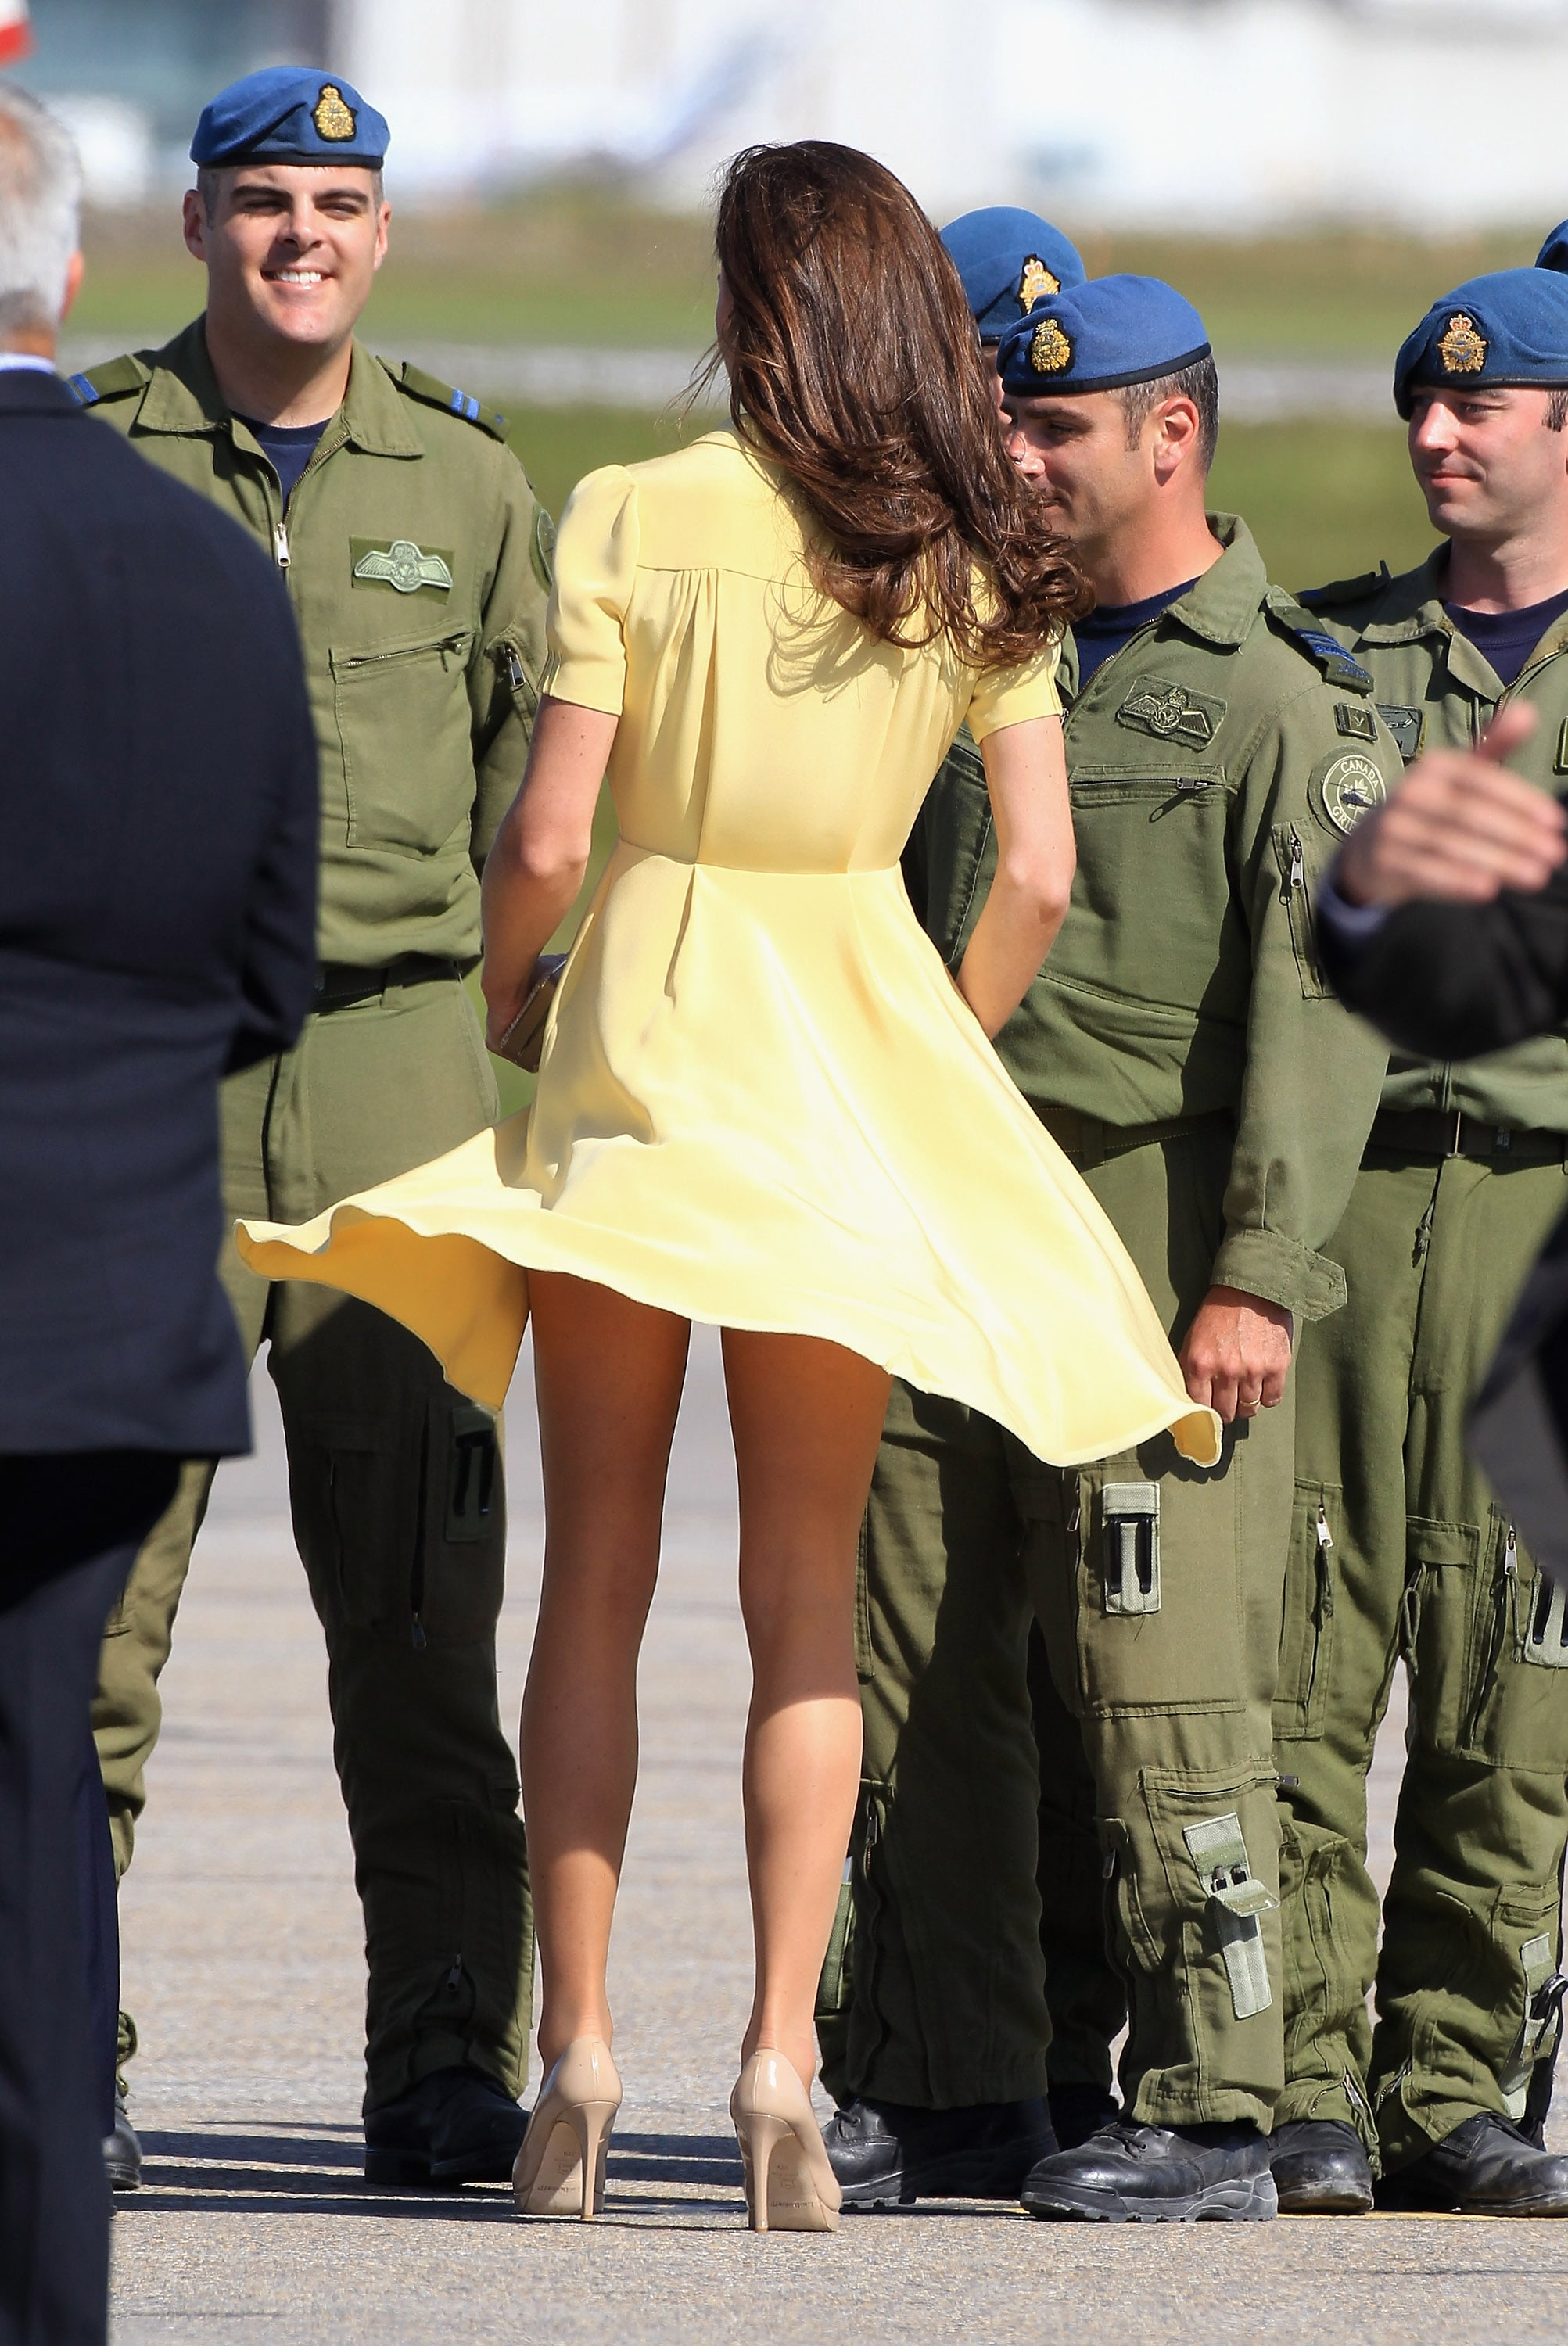 Kate almost suffered a wardrobe malfunction!